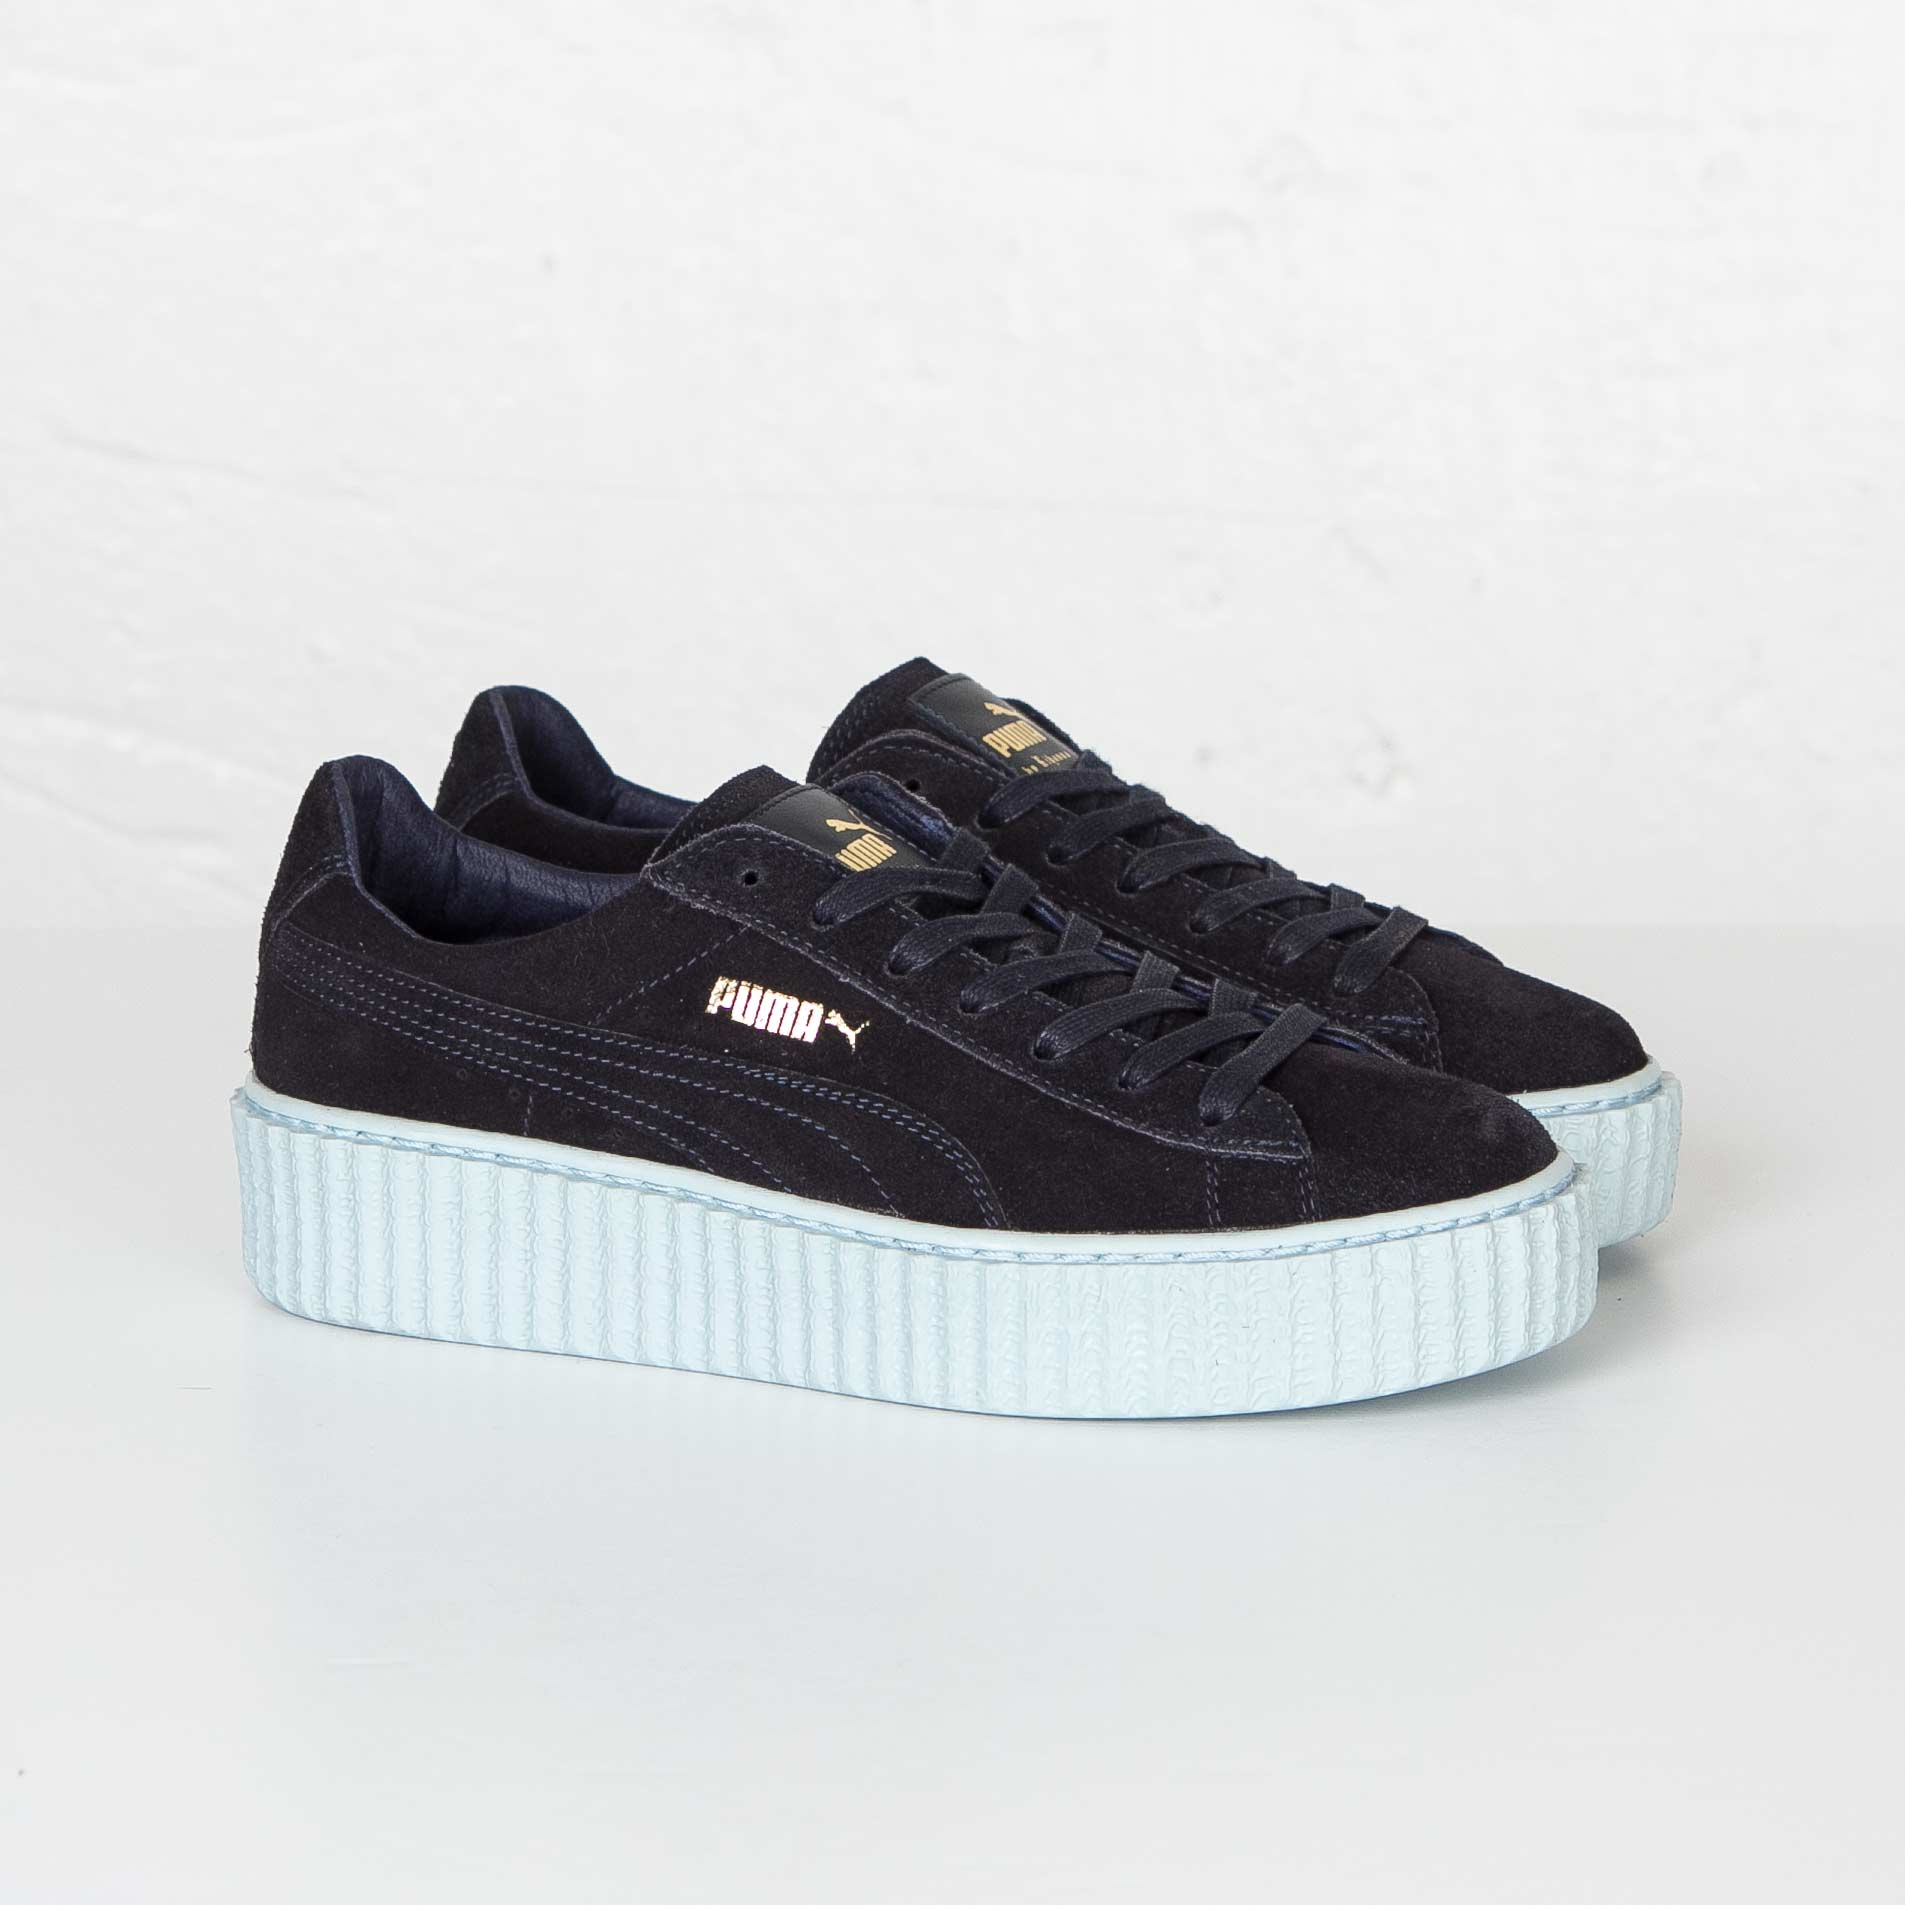 timeless design b366a b12ba Puma Suede Creepers - 361005-05 - Sneakersnstuff | sneakers ...